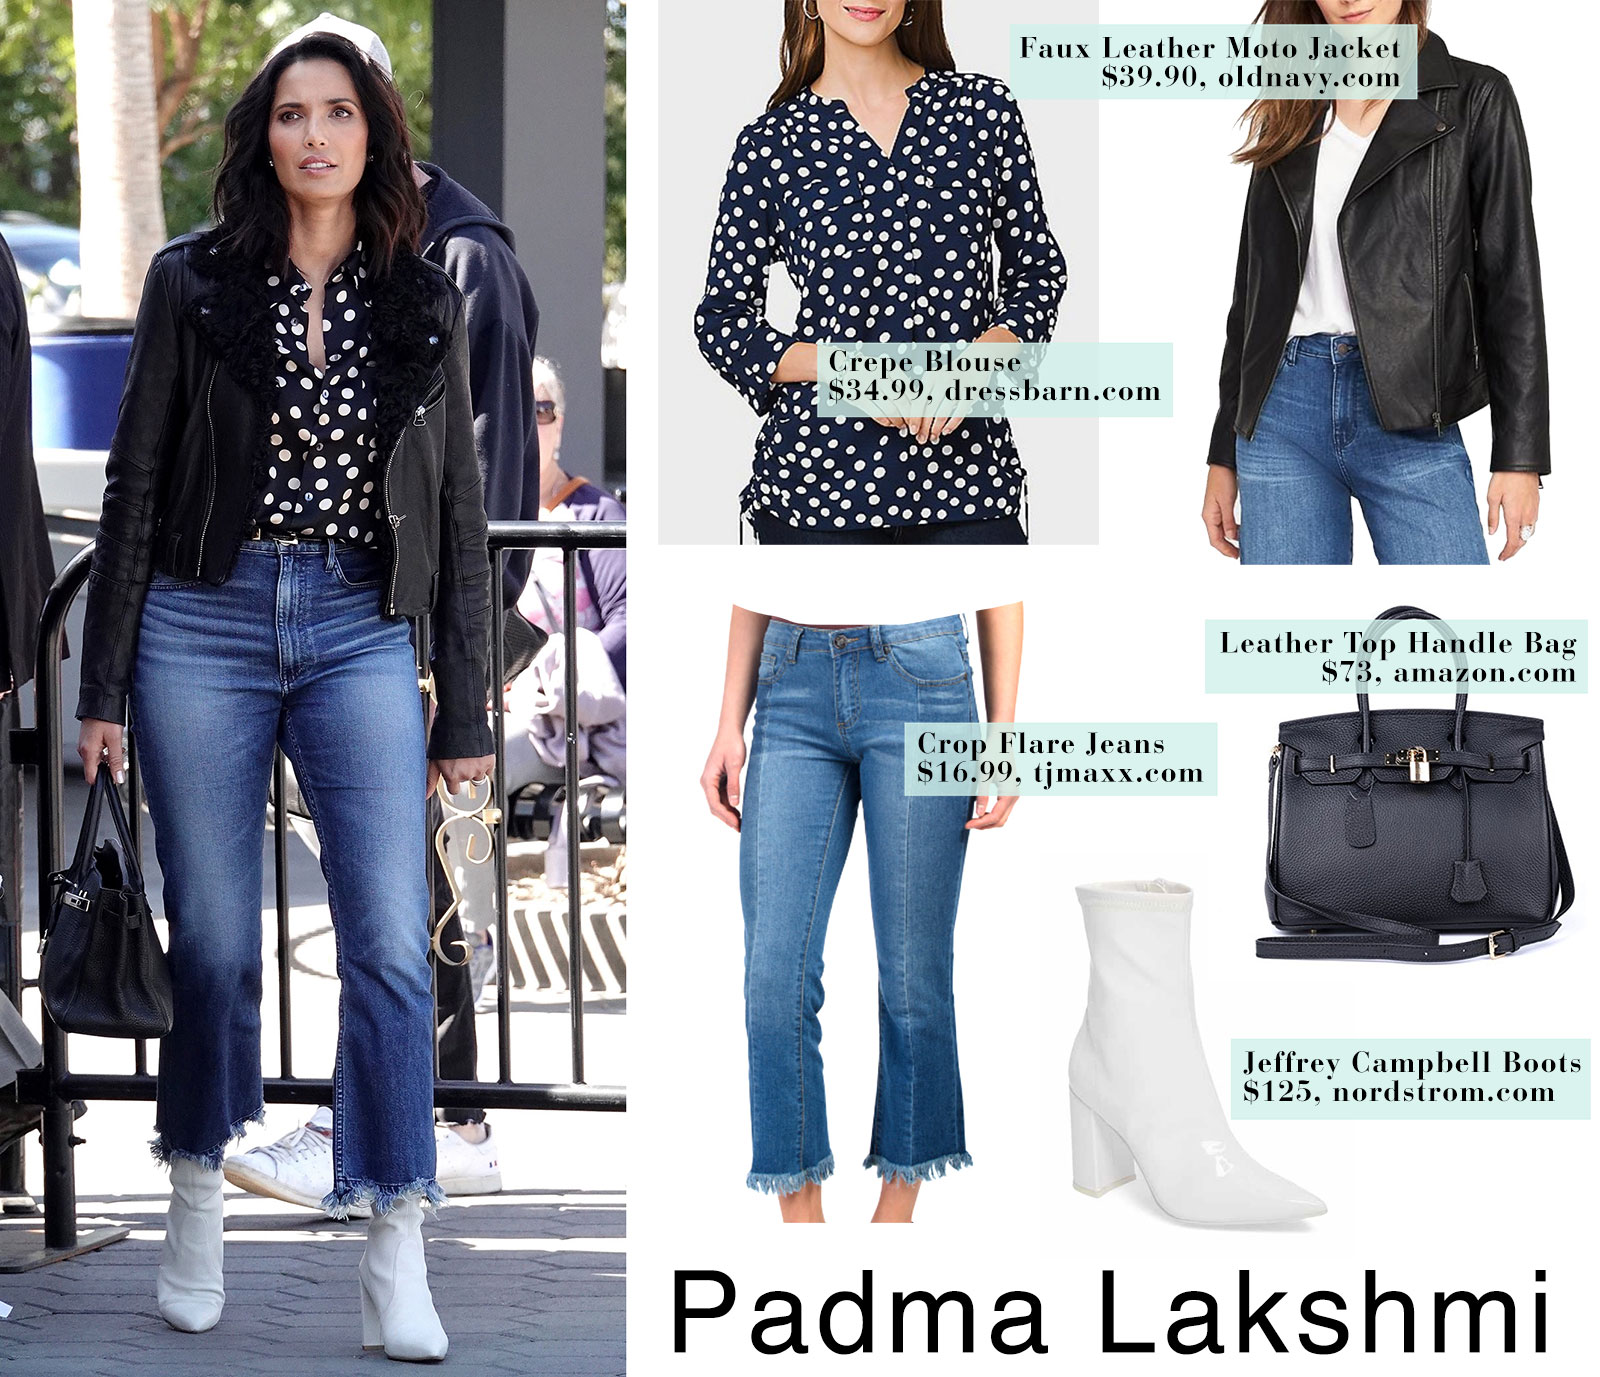 Padma Lakshmi's polka dot blouse and white ankle boots look for less